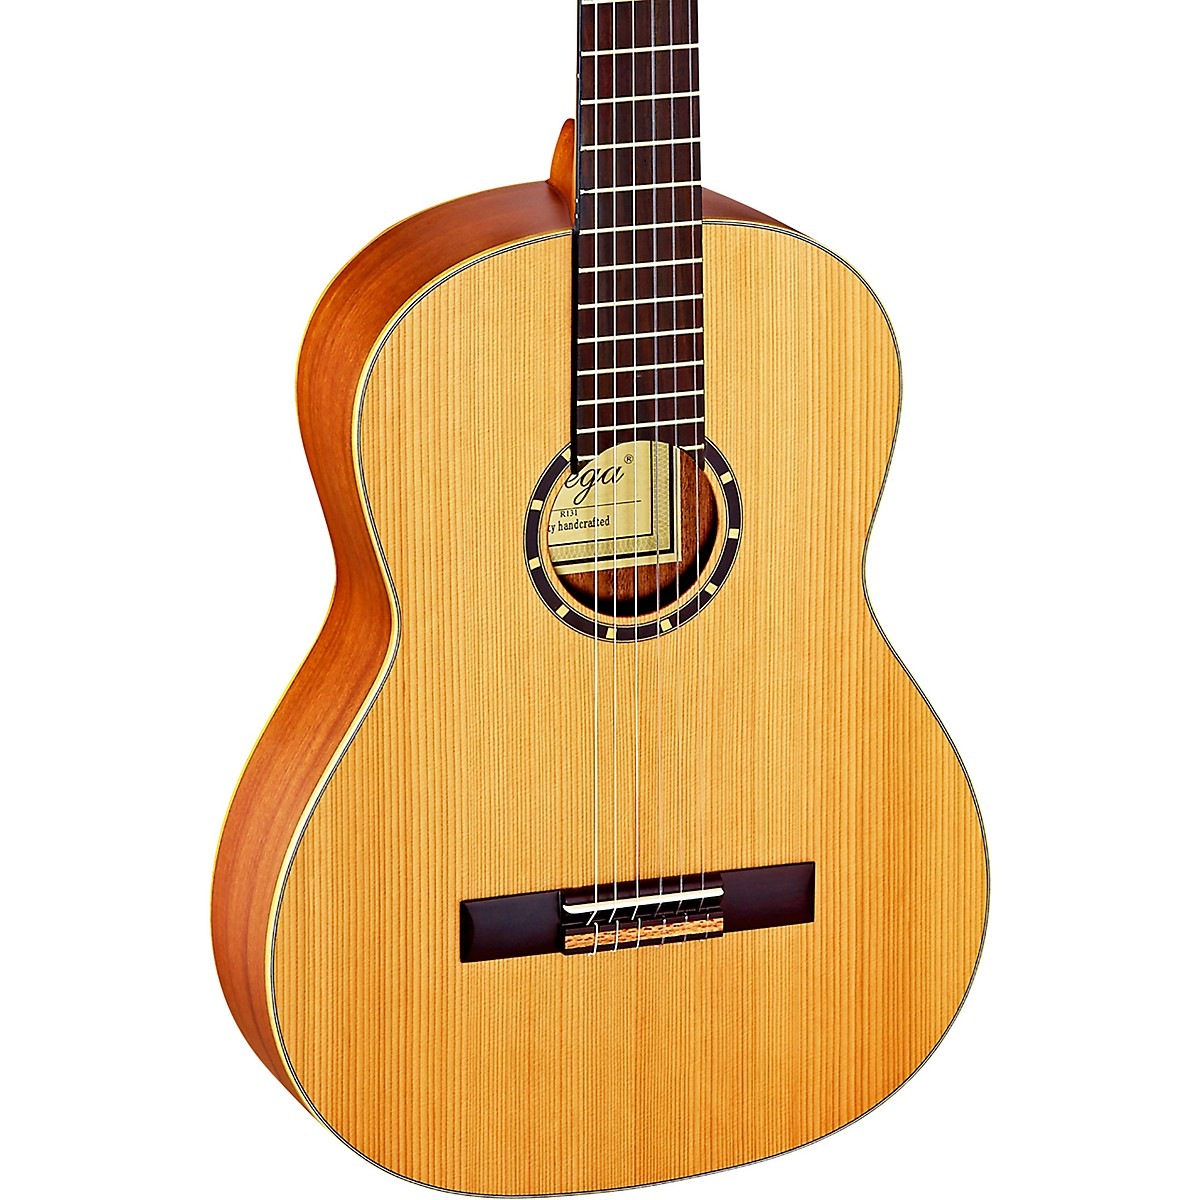 Ortega Family Series Pro R131 Full Size Classical Guitar